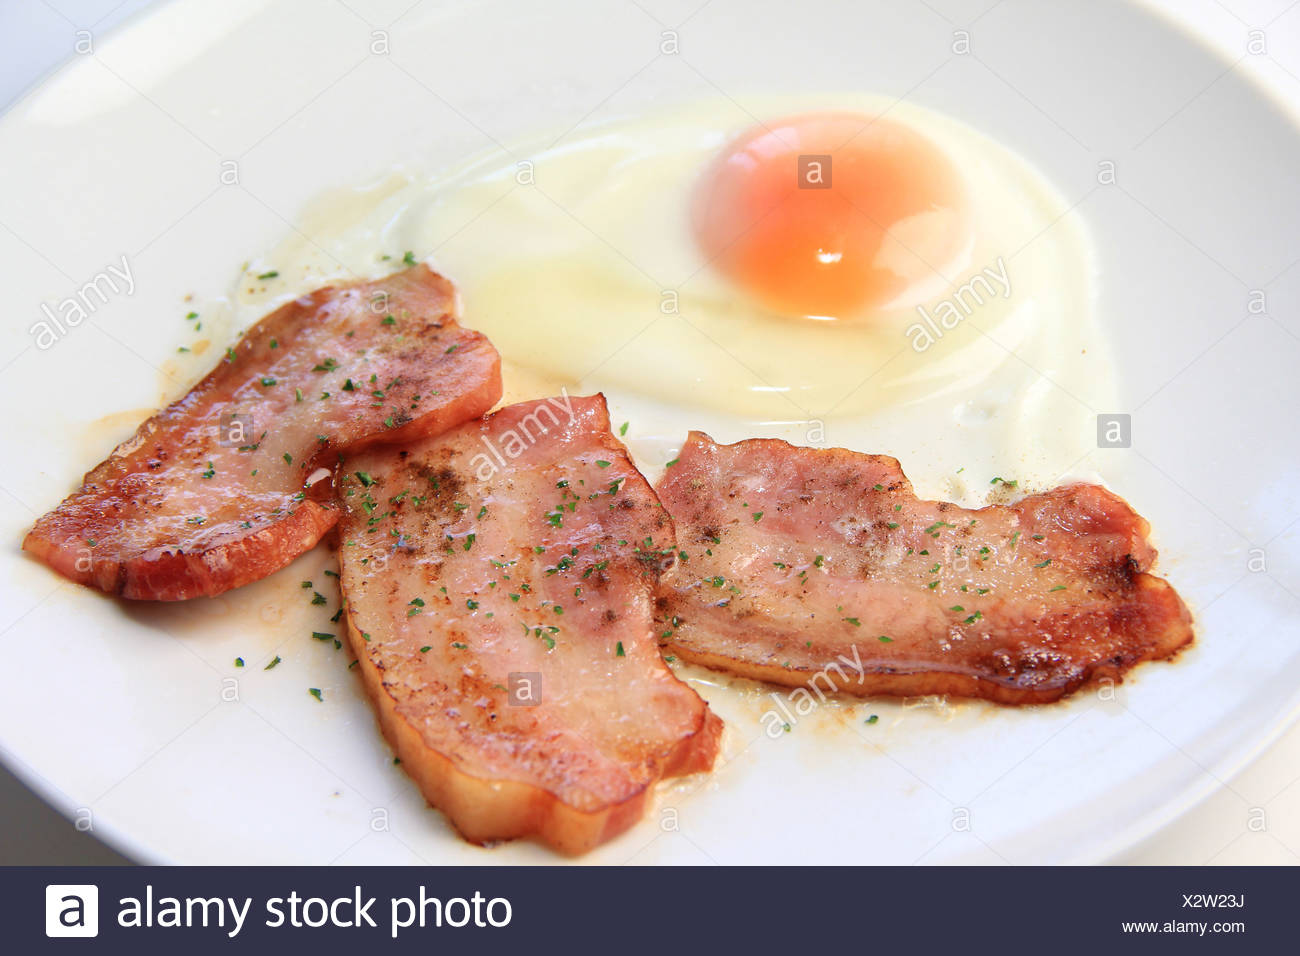 Bacon and eggs - Stock Image